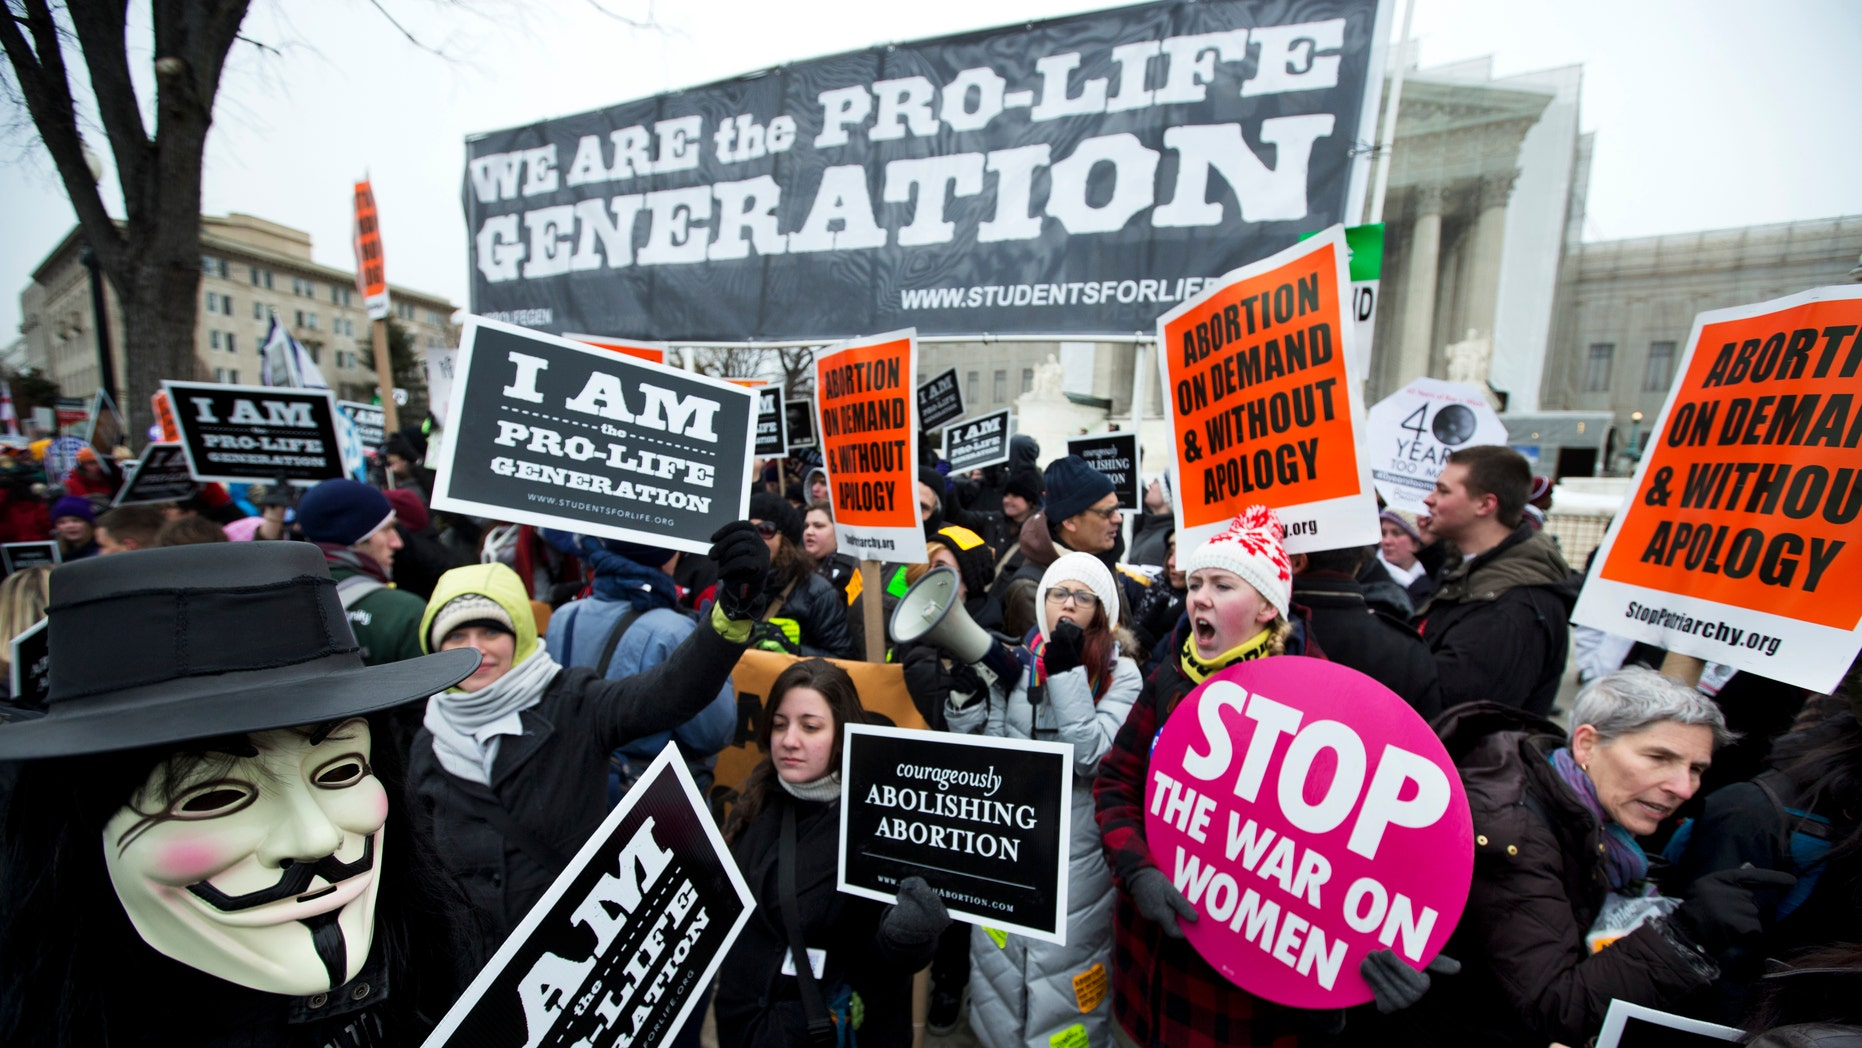 Pro-abortion rights activists, rally face-to-face against anti-abortion demonstrators as both march in front of the U.S. Supreme Court in Washington in a demonstration that coincides with the 40th anniversary of the Roe vs. Wade decision that legalized abortion.